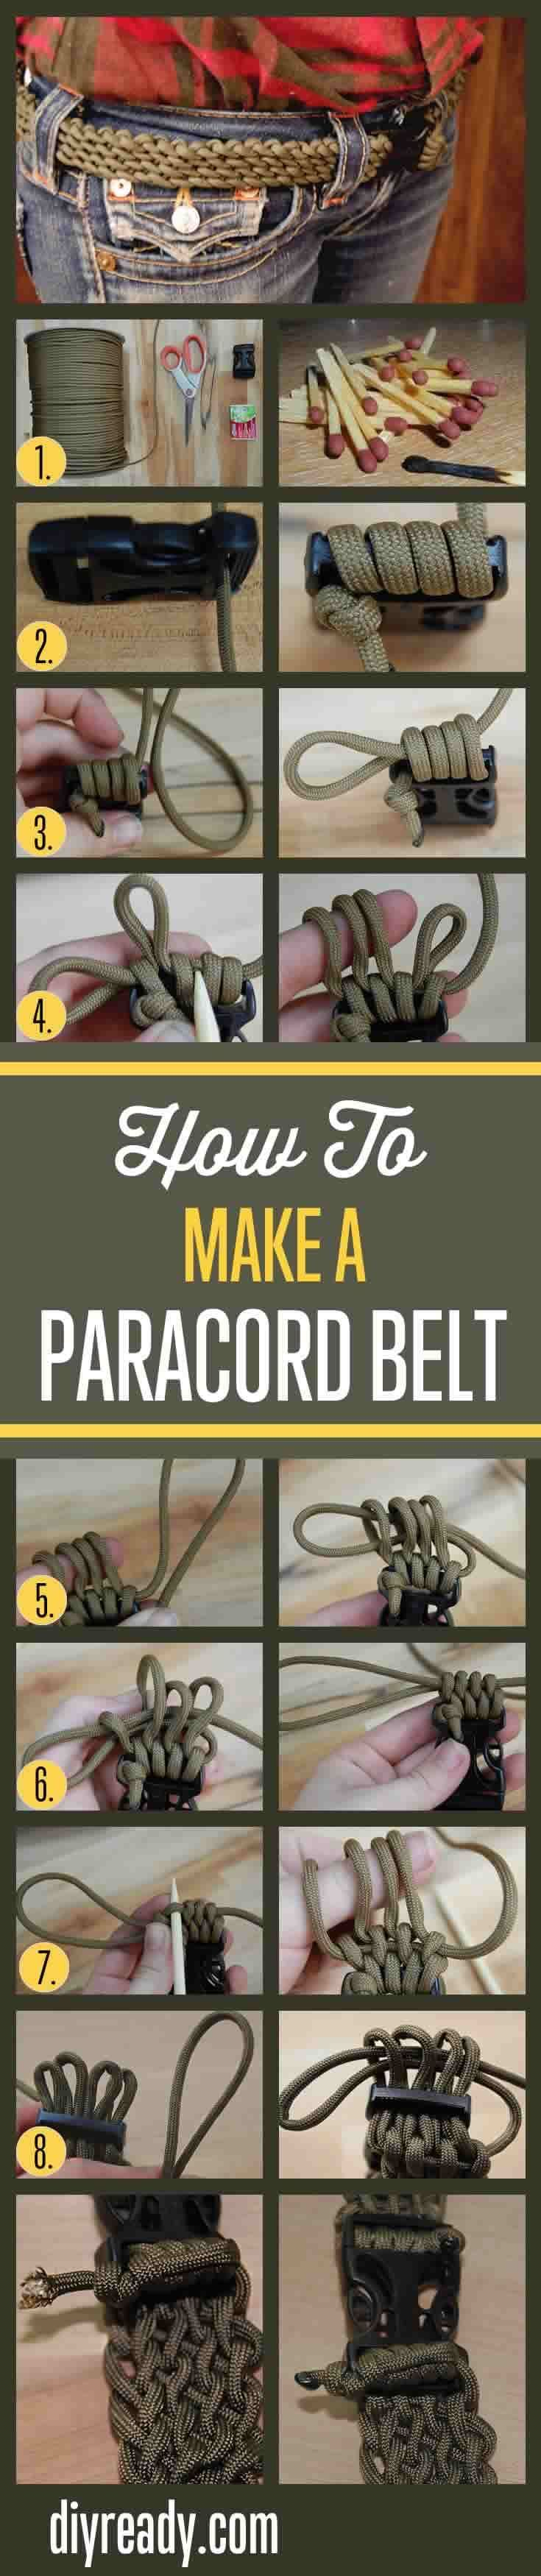 paracord instructions step by step